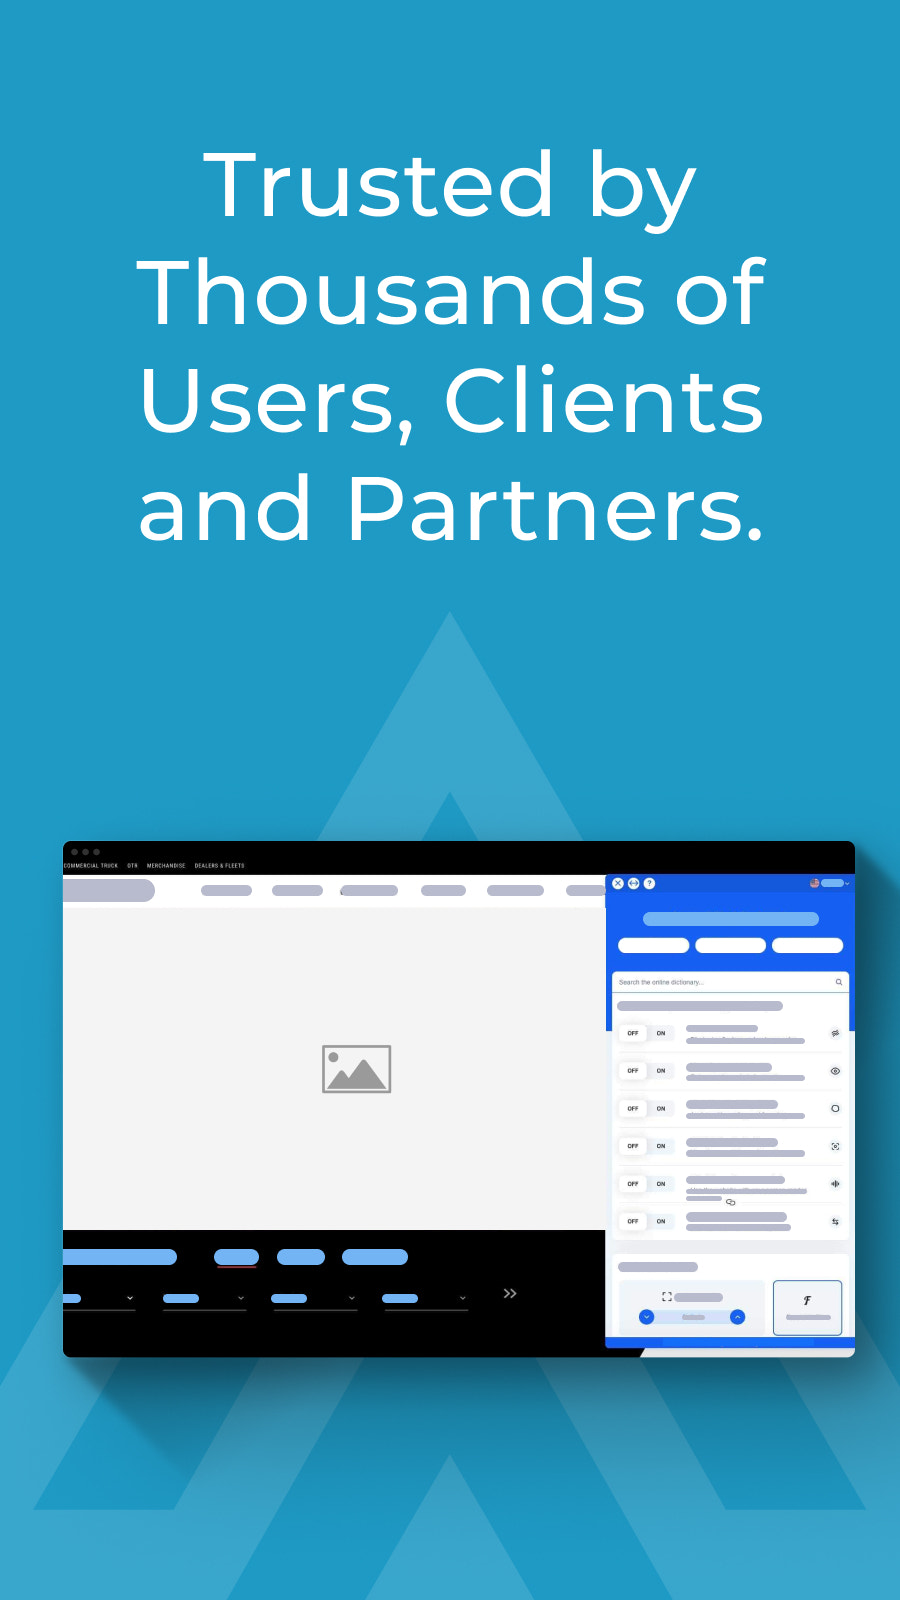 Trusted by Thousands of Users, Clients and Partners.